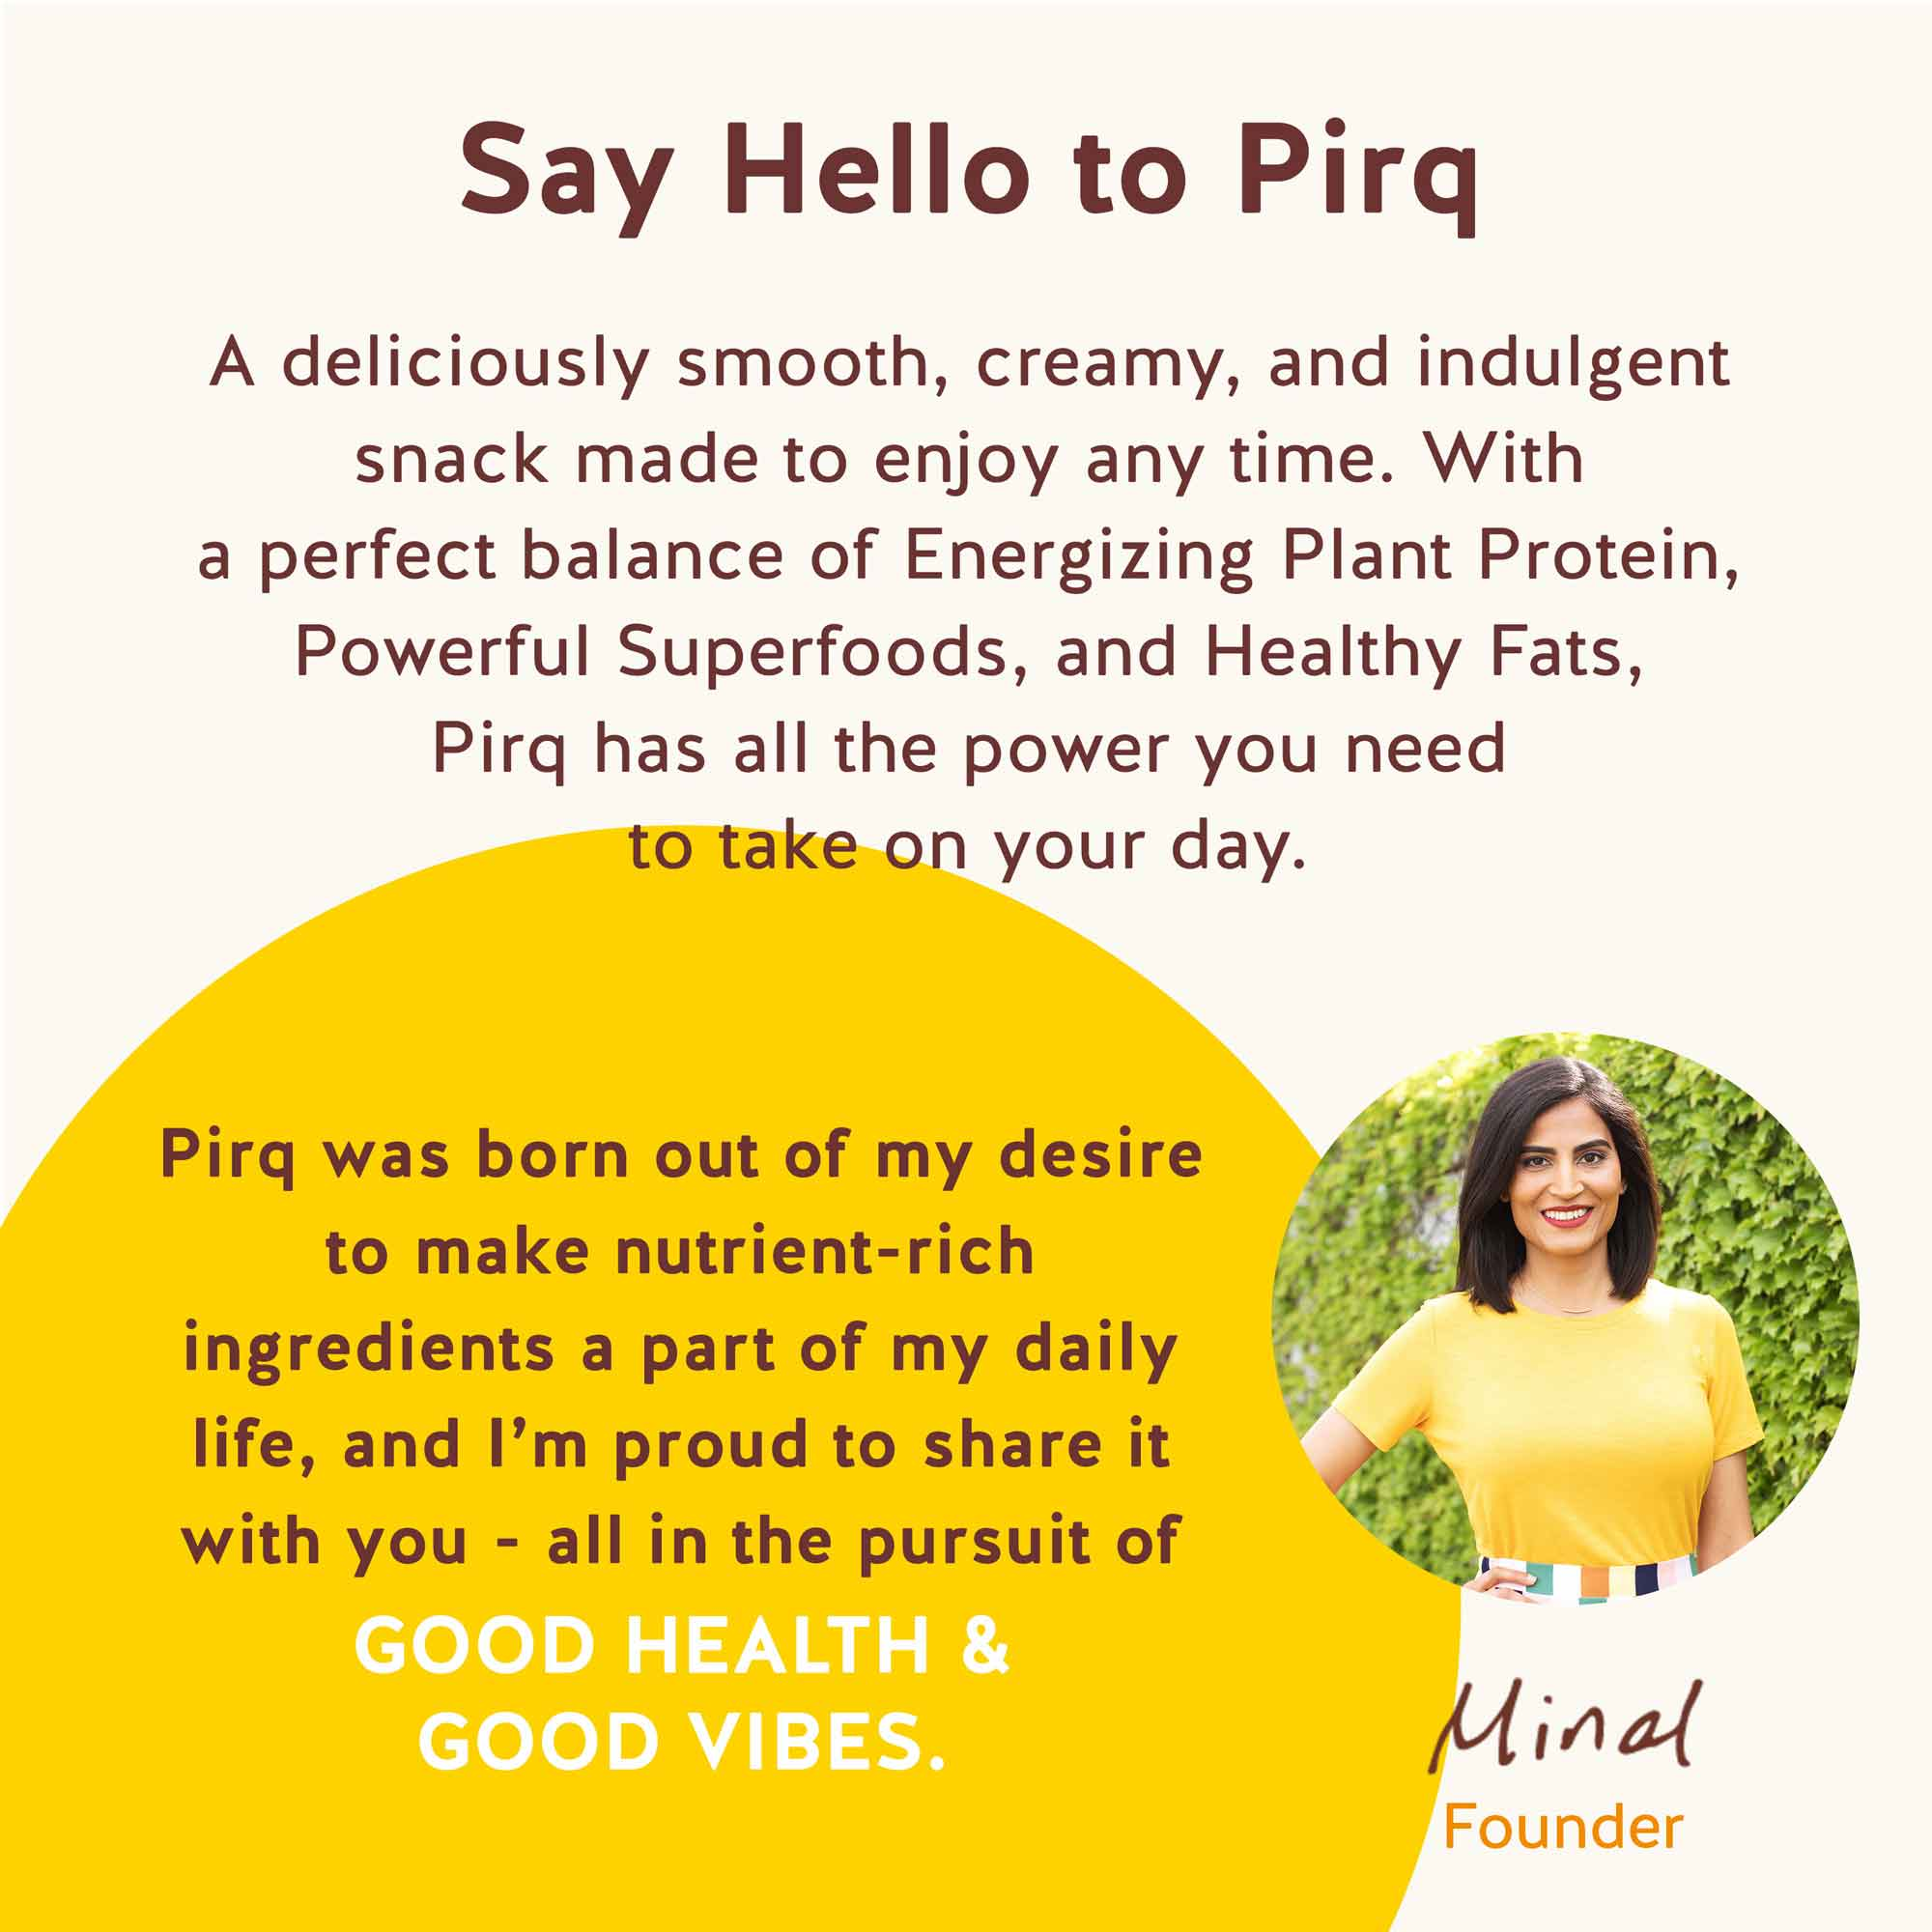 Pirq About Us Story Of How Brand Was Created By Founder Minal Bhakta with Turmeric, Curcumin, and Maca